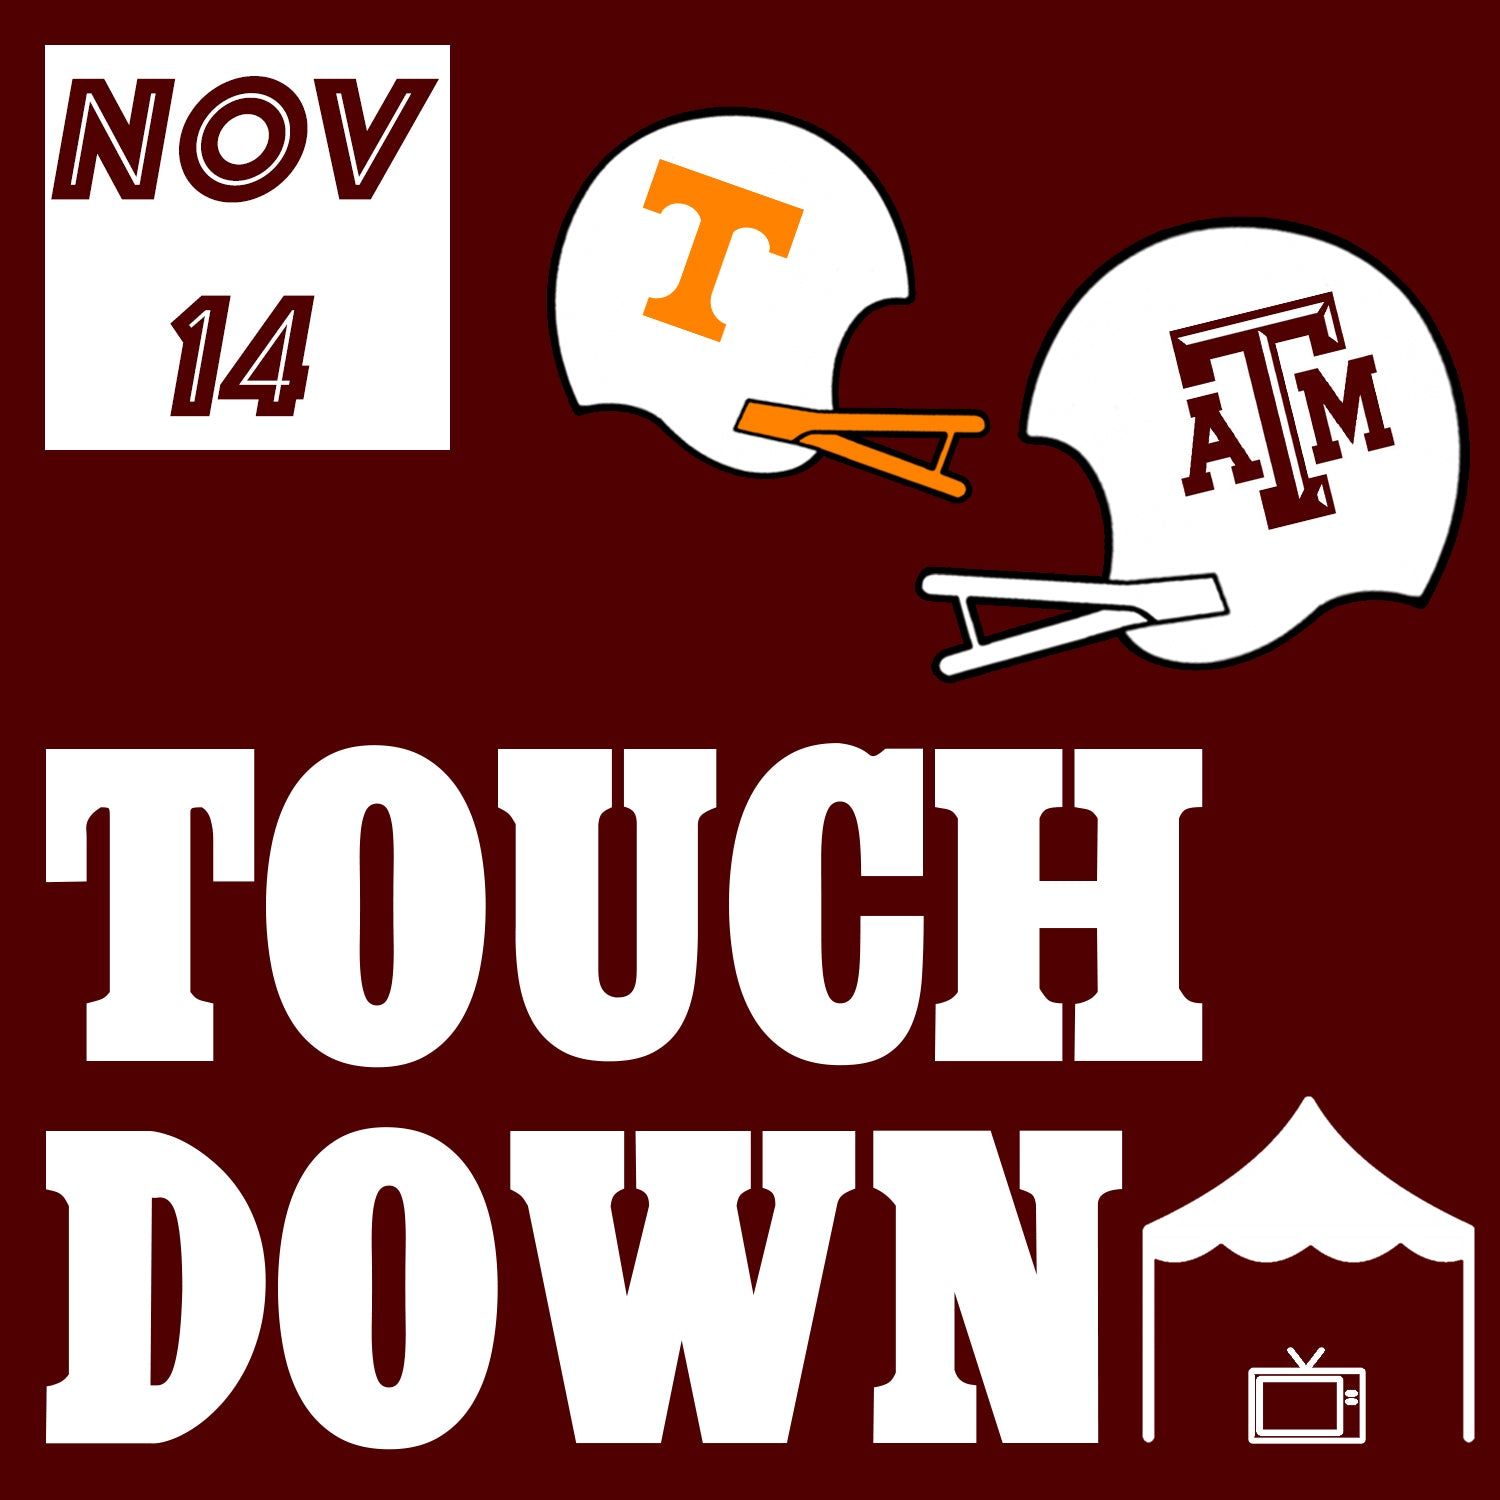 Texas A&M Touchdown Package_November 14th